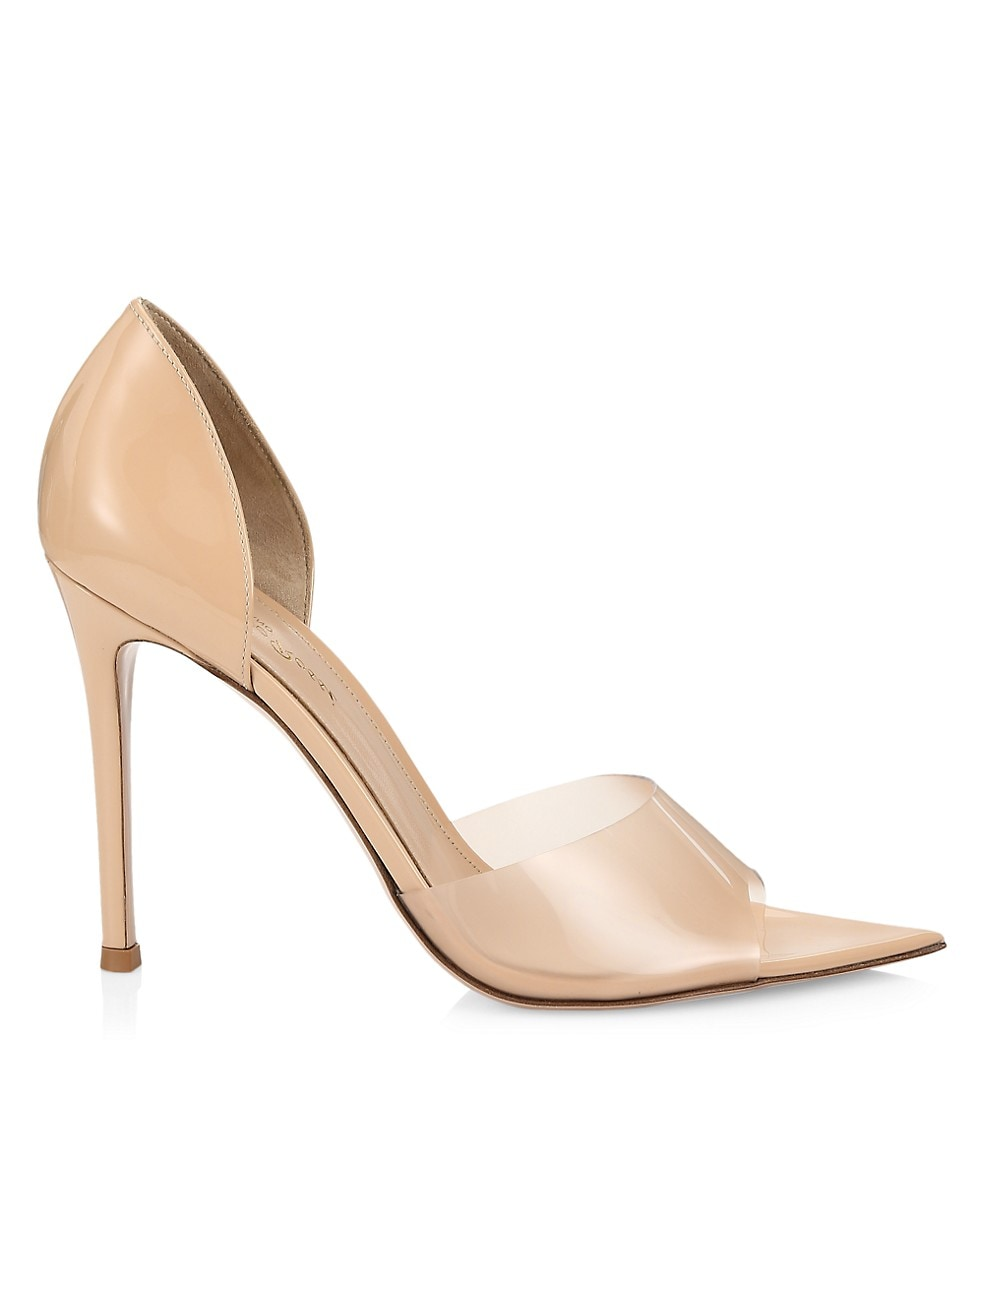 Bree PVC d'Orsay Pumps by Gianvito Rossi, available on saksfifthavenue.com for $745 Gigi Hadid Shoes Exact Product